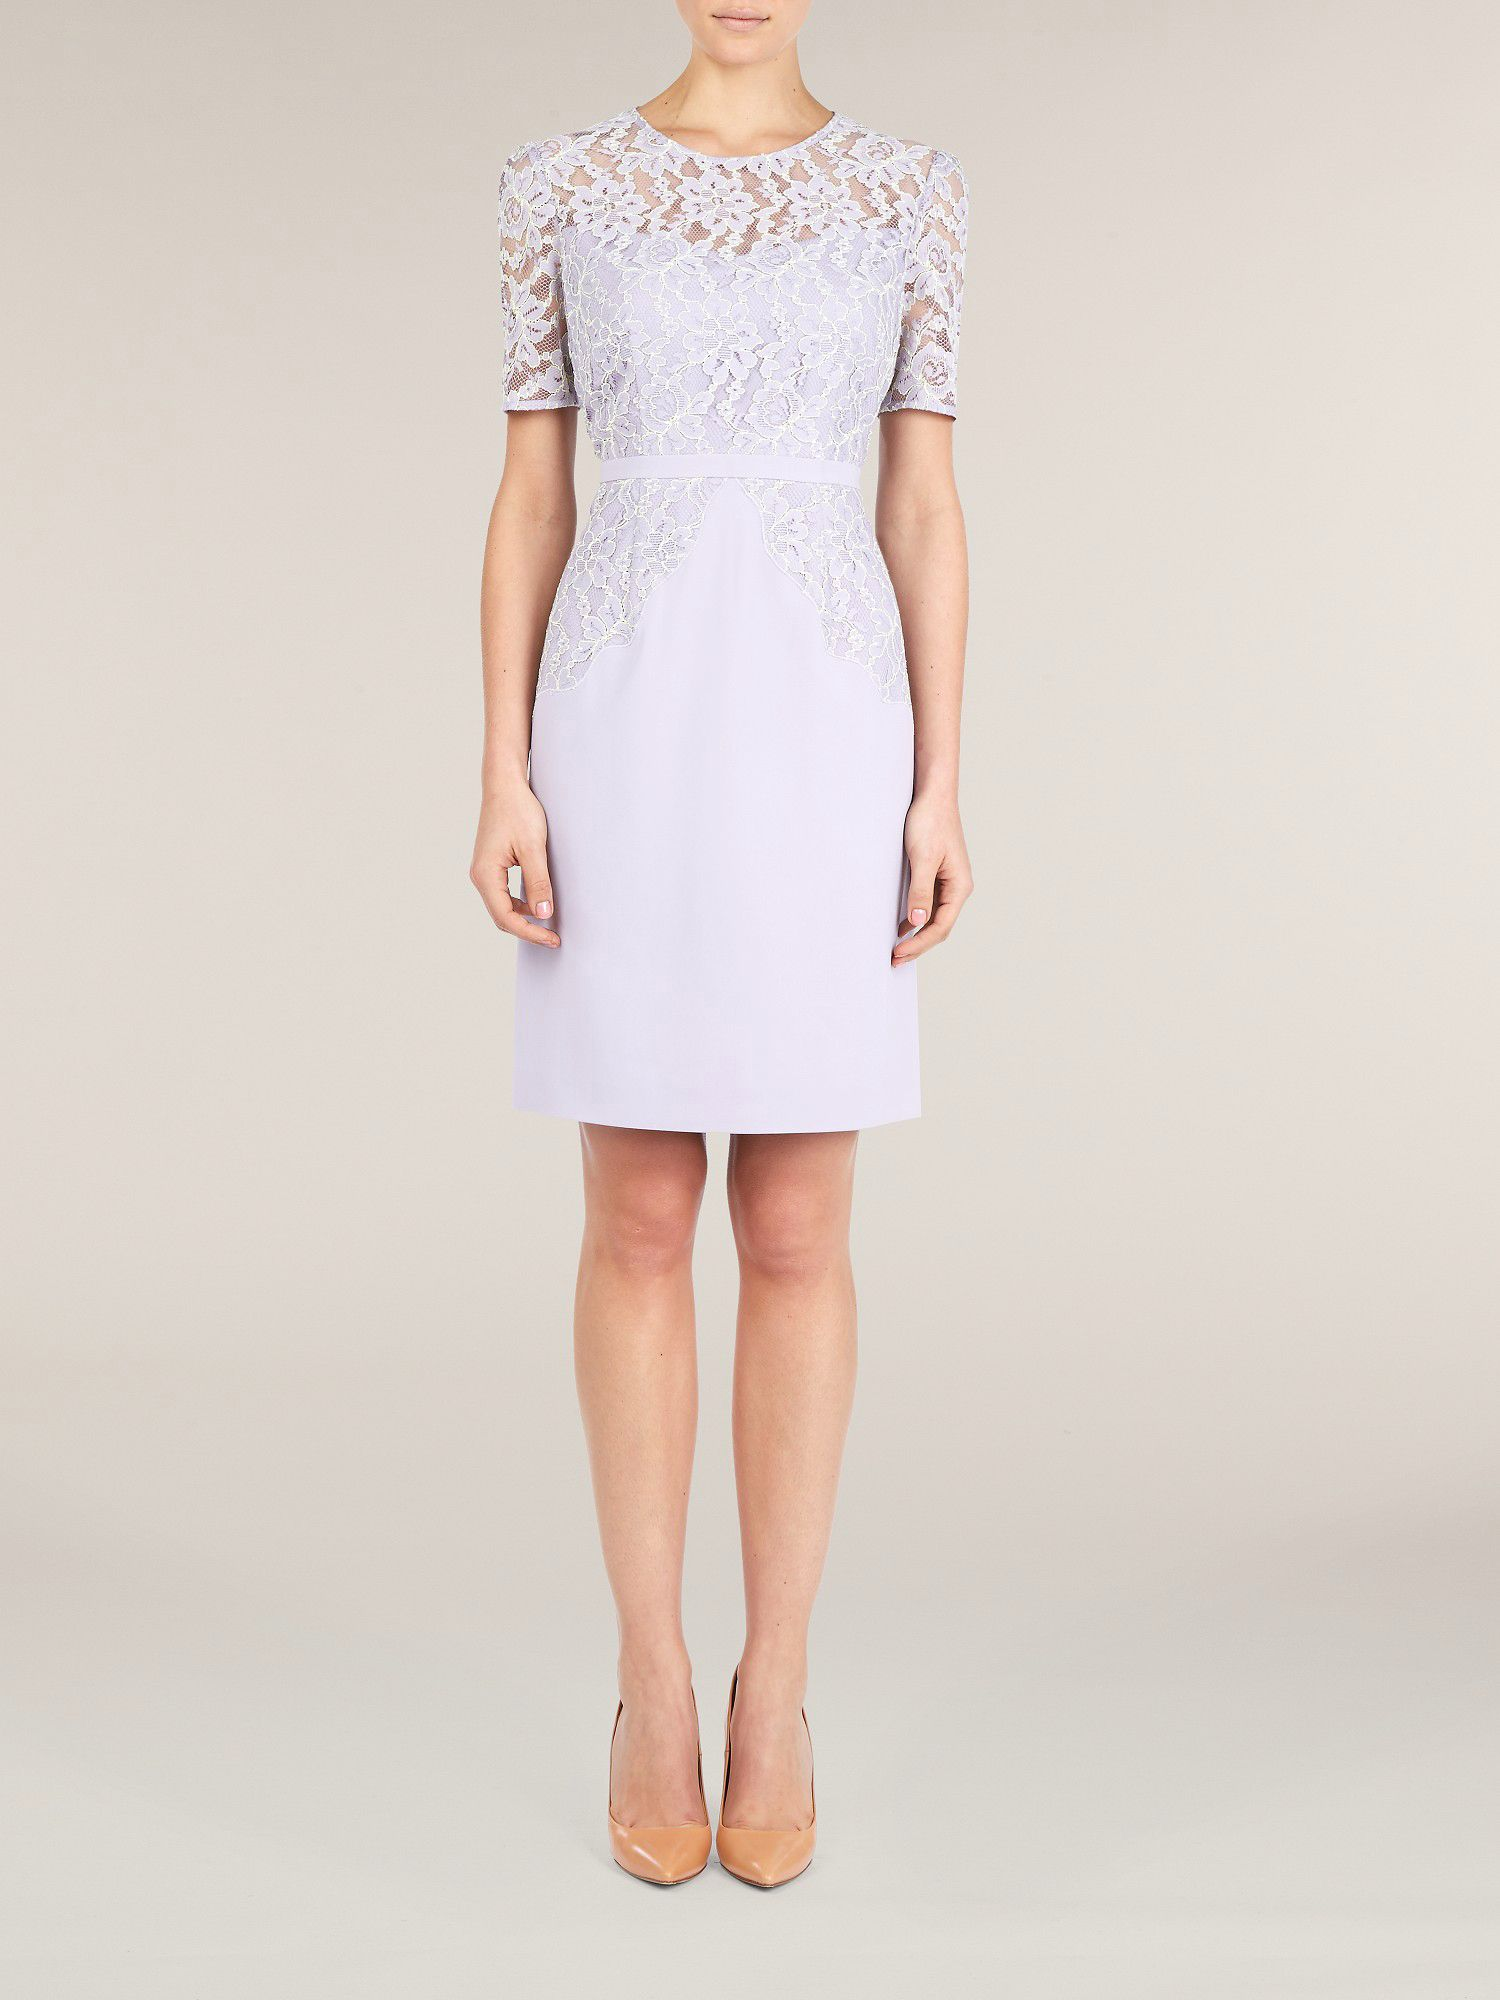 Lilac lace overlay dress